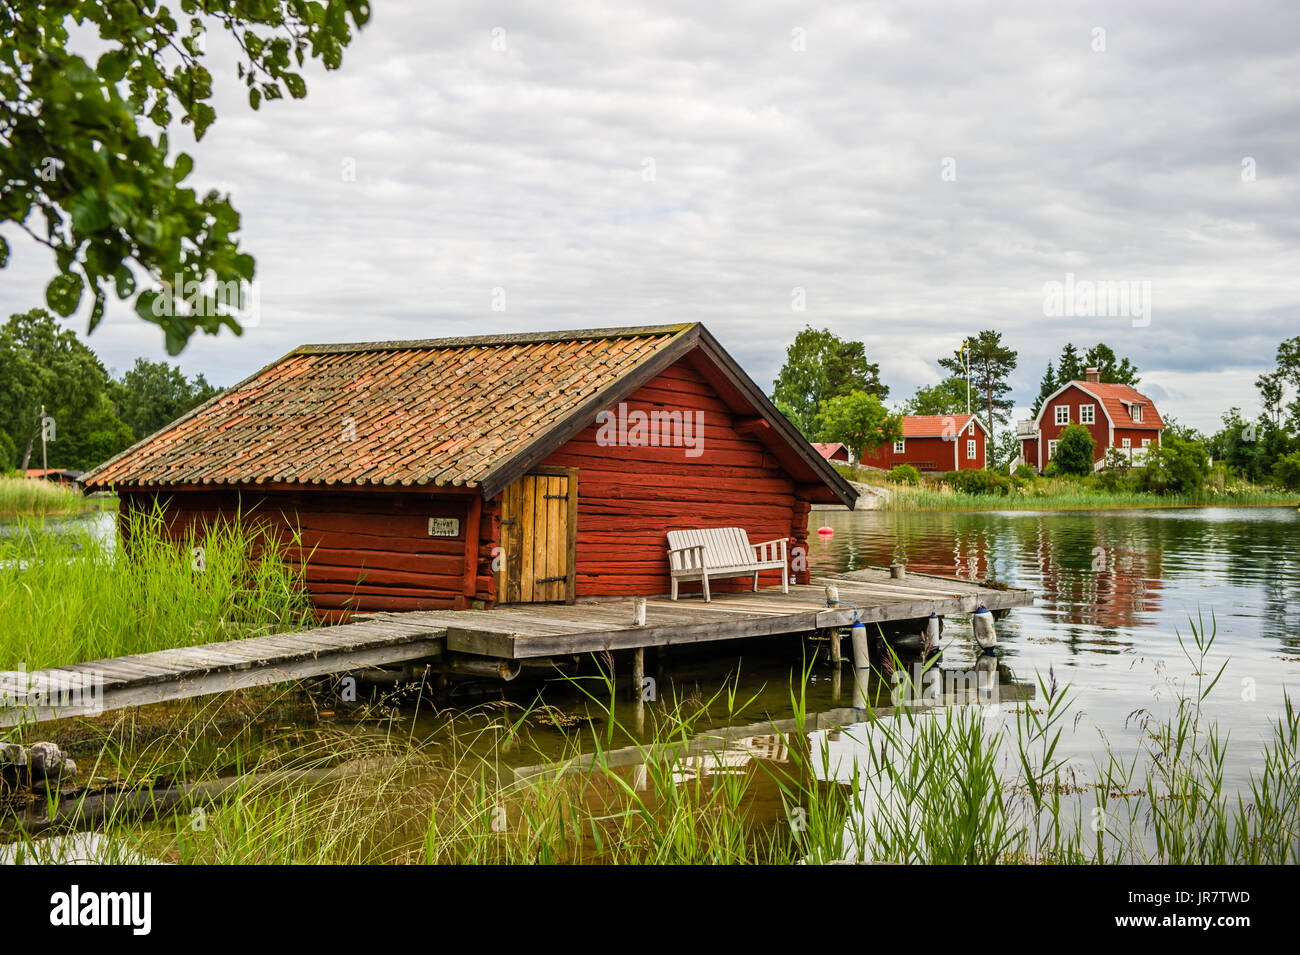 The old timbered boathouse with the liars bench on the bridge in the northern part of Stockholm archipelago, Bjorko-Arholma, Marum - Stock Image